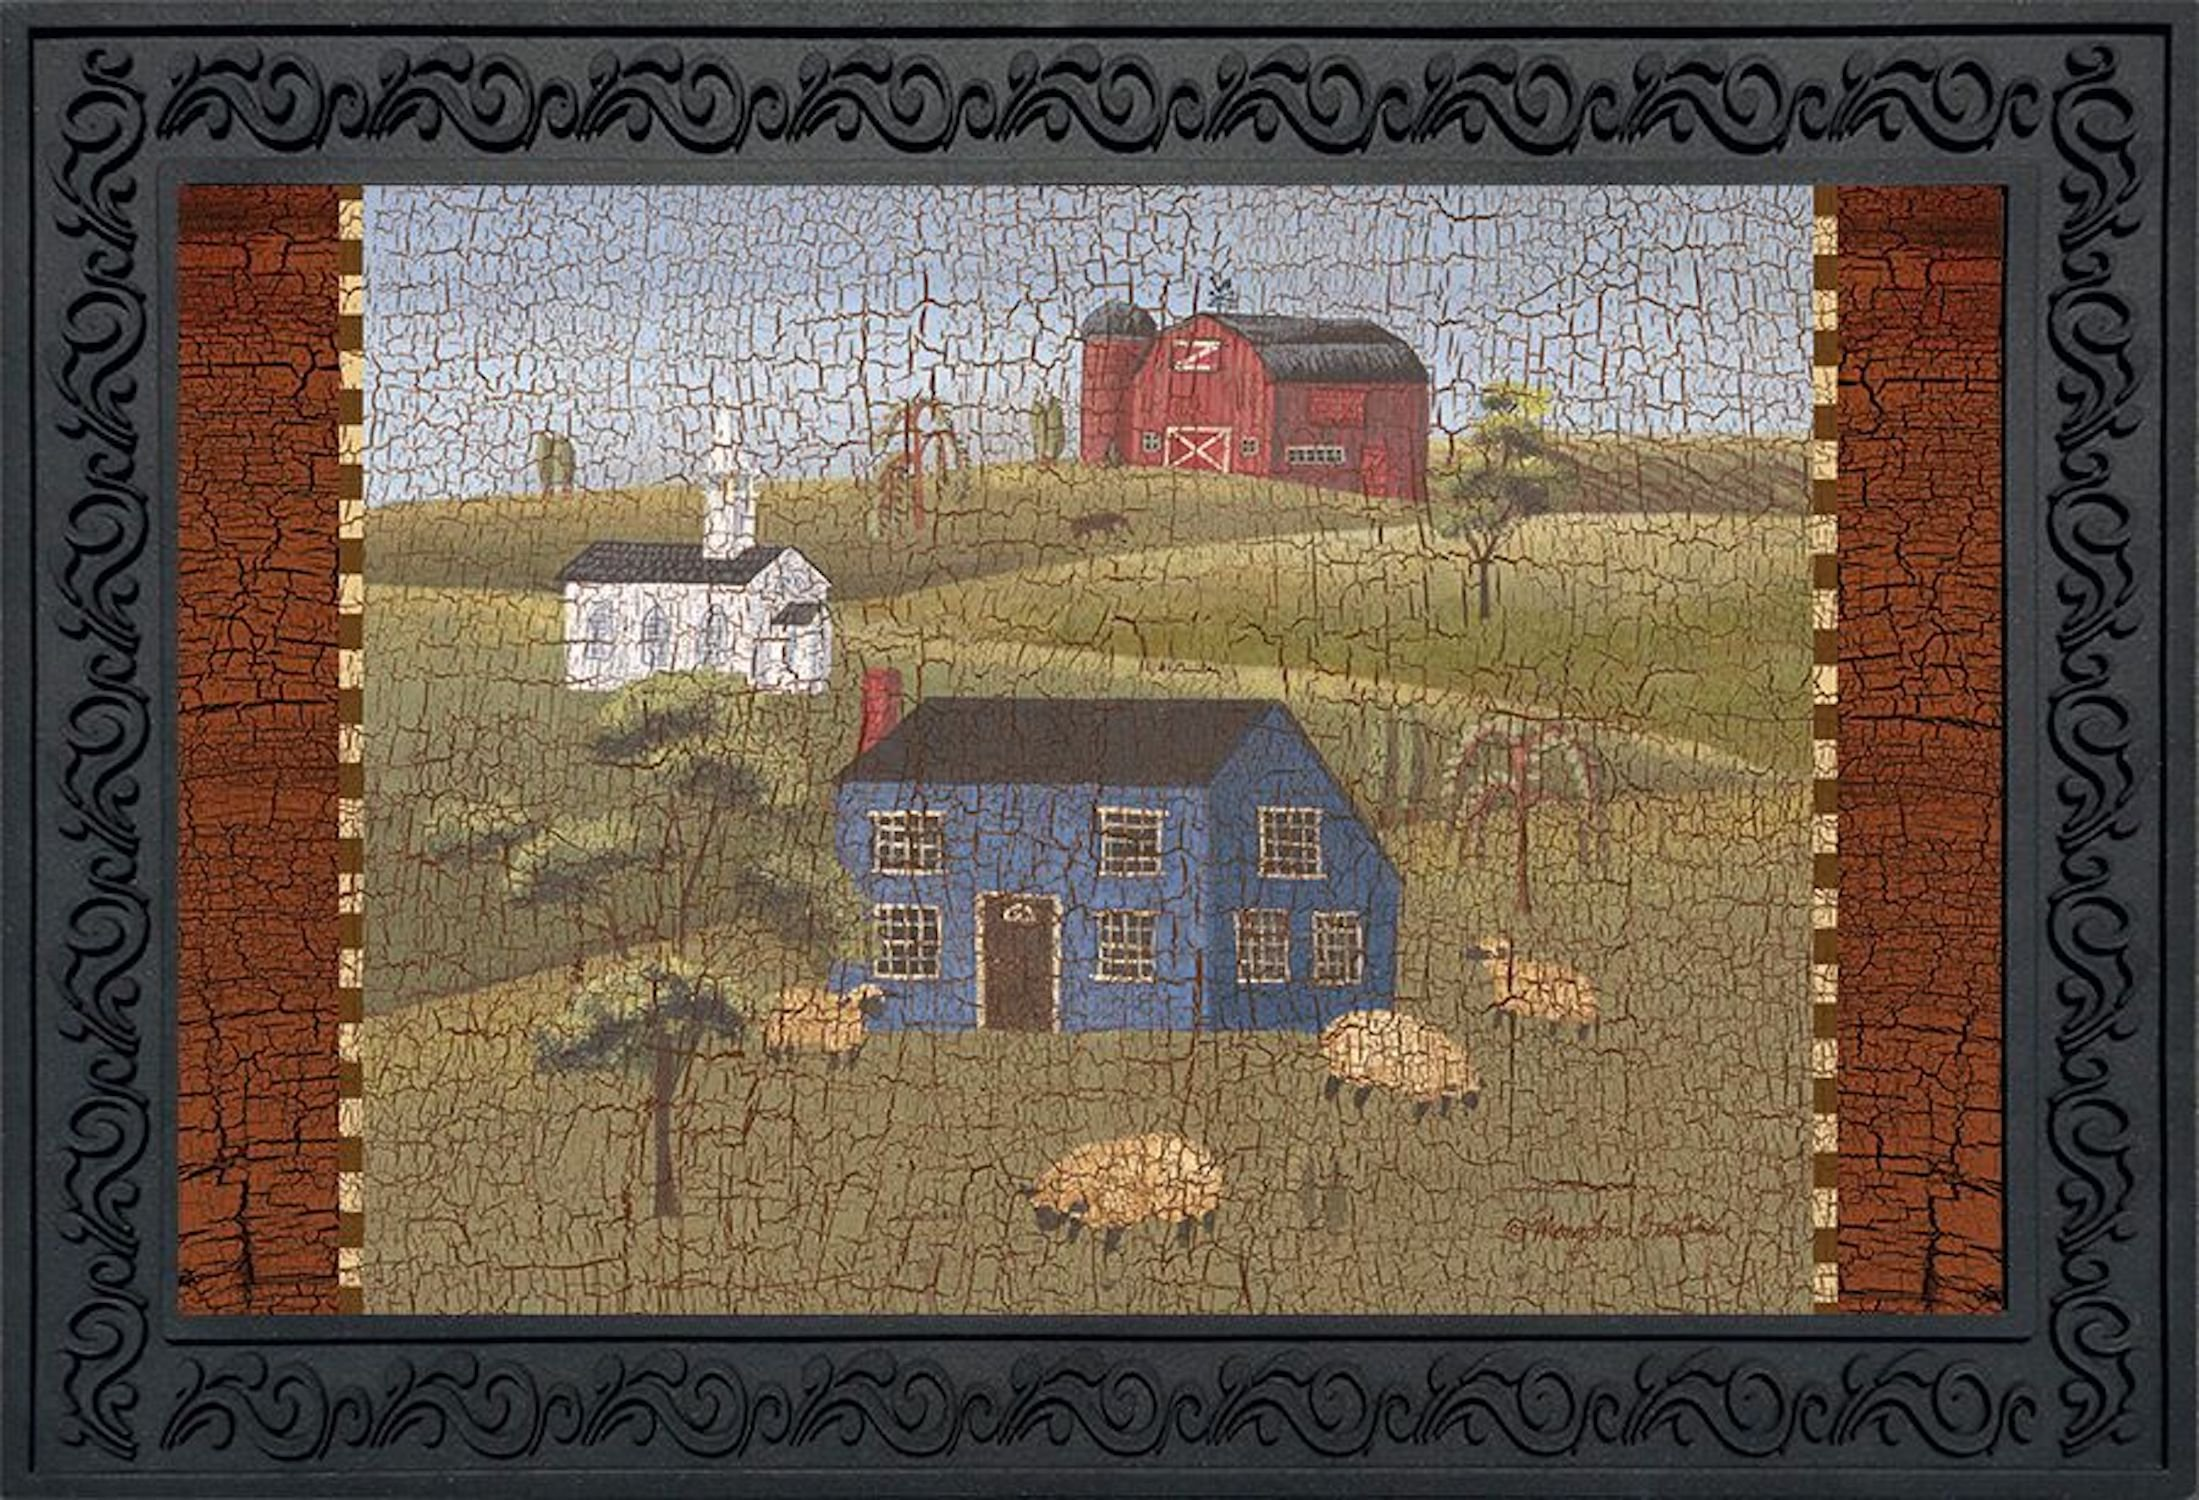 Briarwood Lane Faith Family Friends Primitive Doormat Indoor Outdoor Everyday Sheep 18'' x 30'' by Briarwood Lane